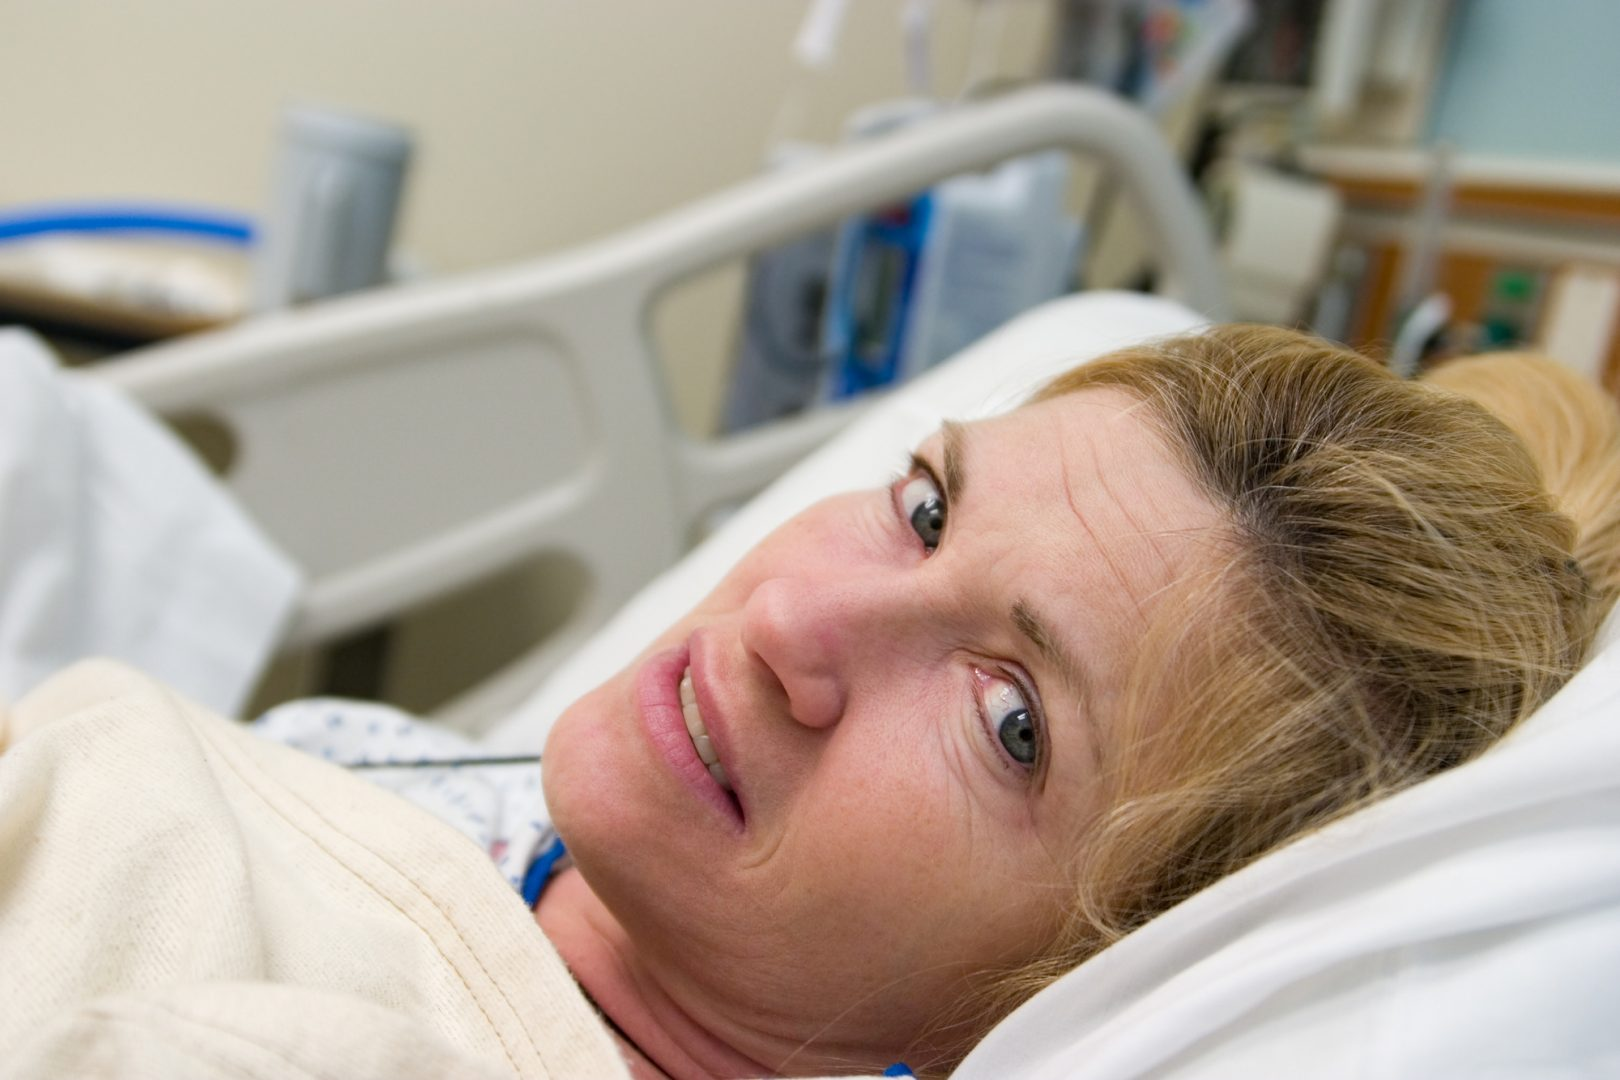 Women affected by Dr Emil Gayed